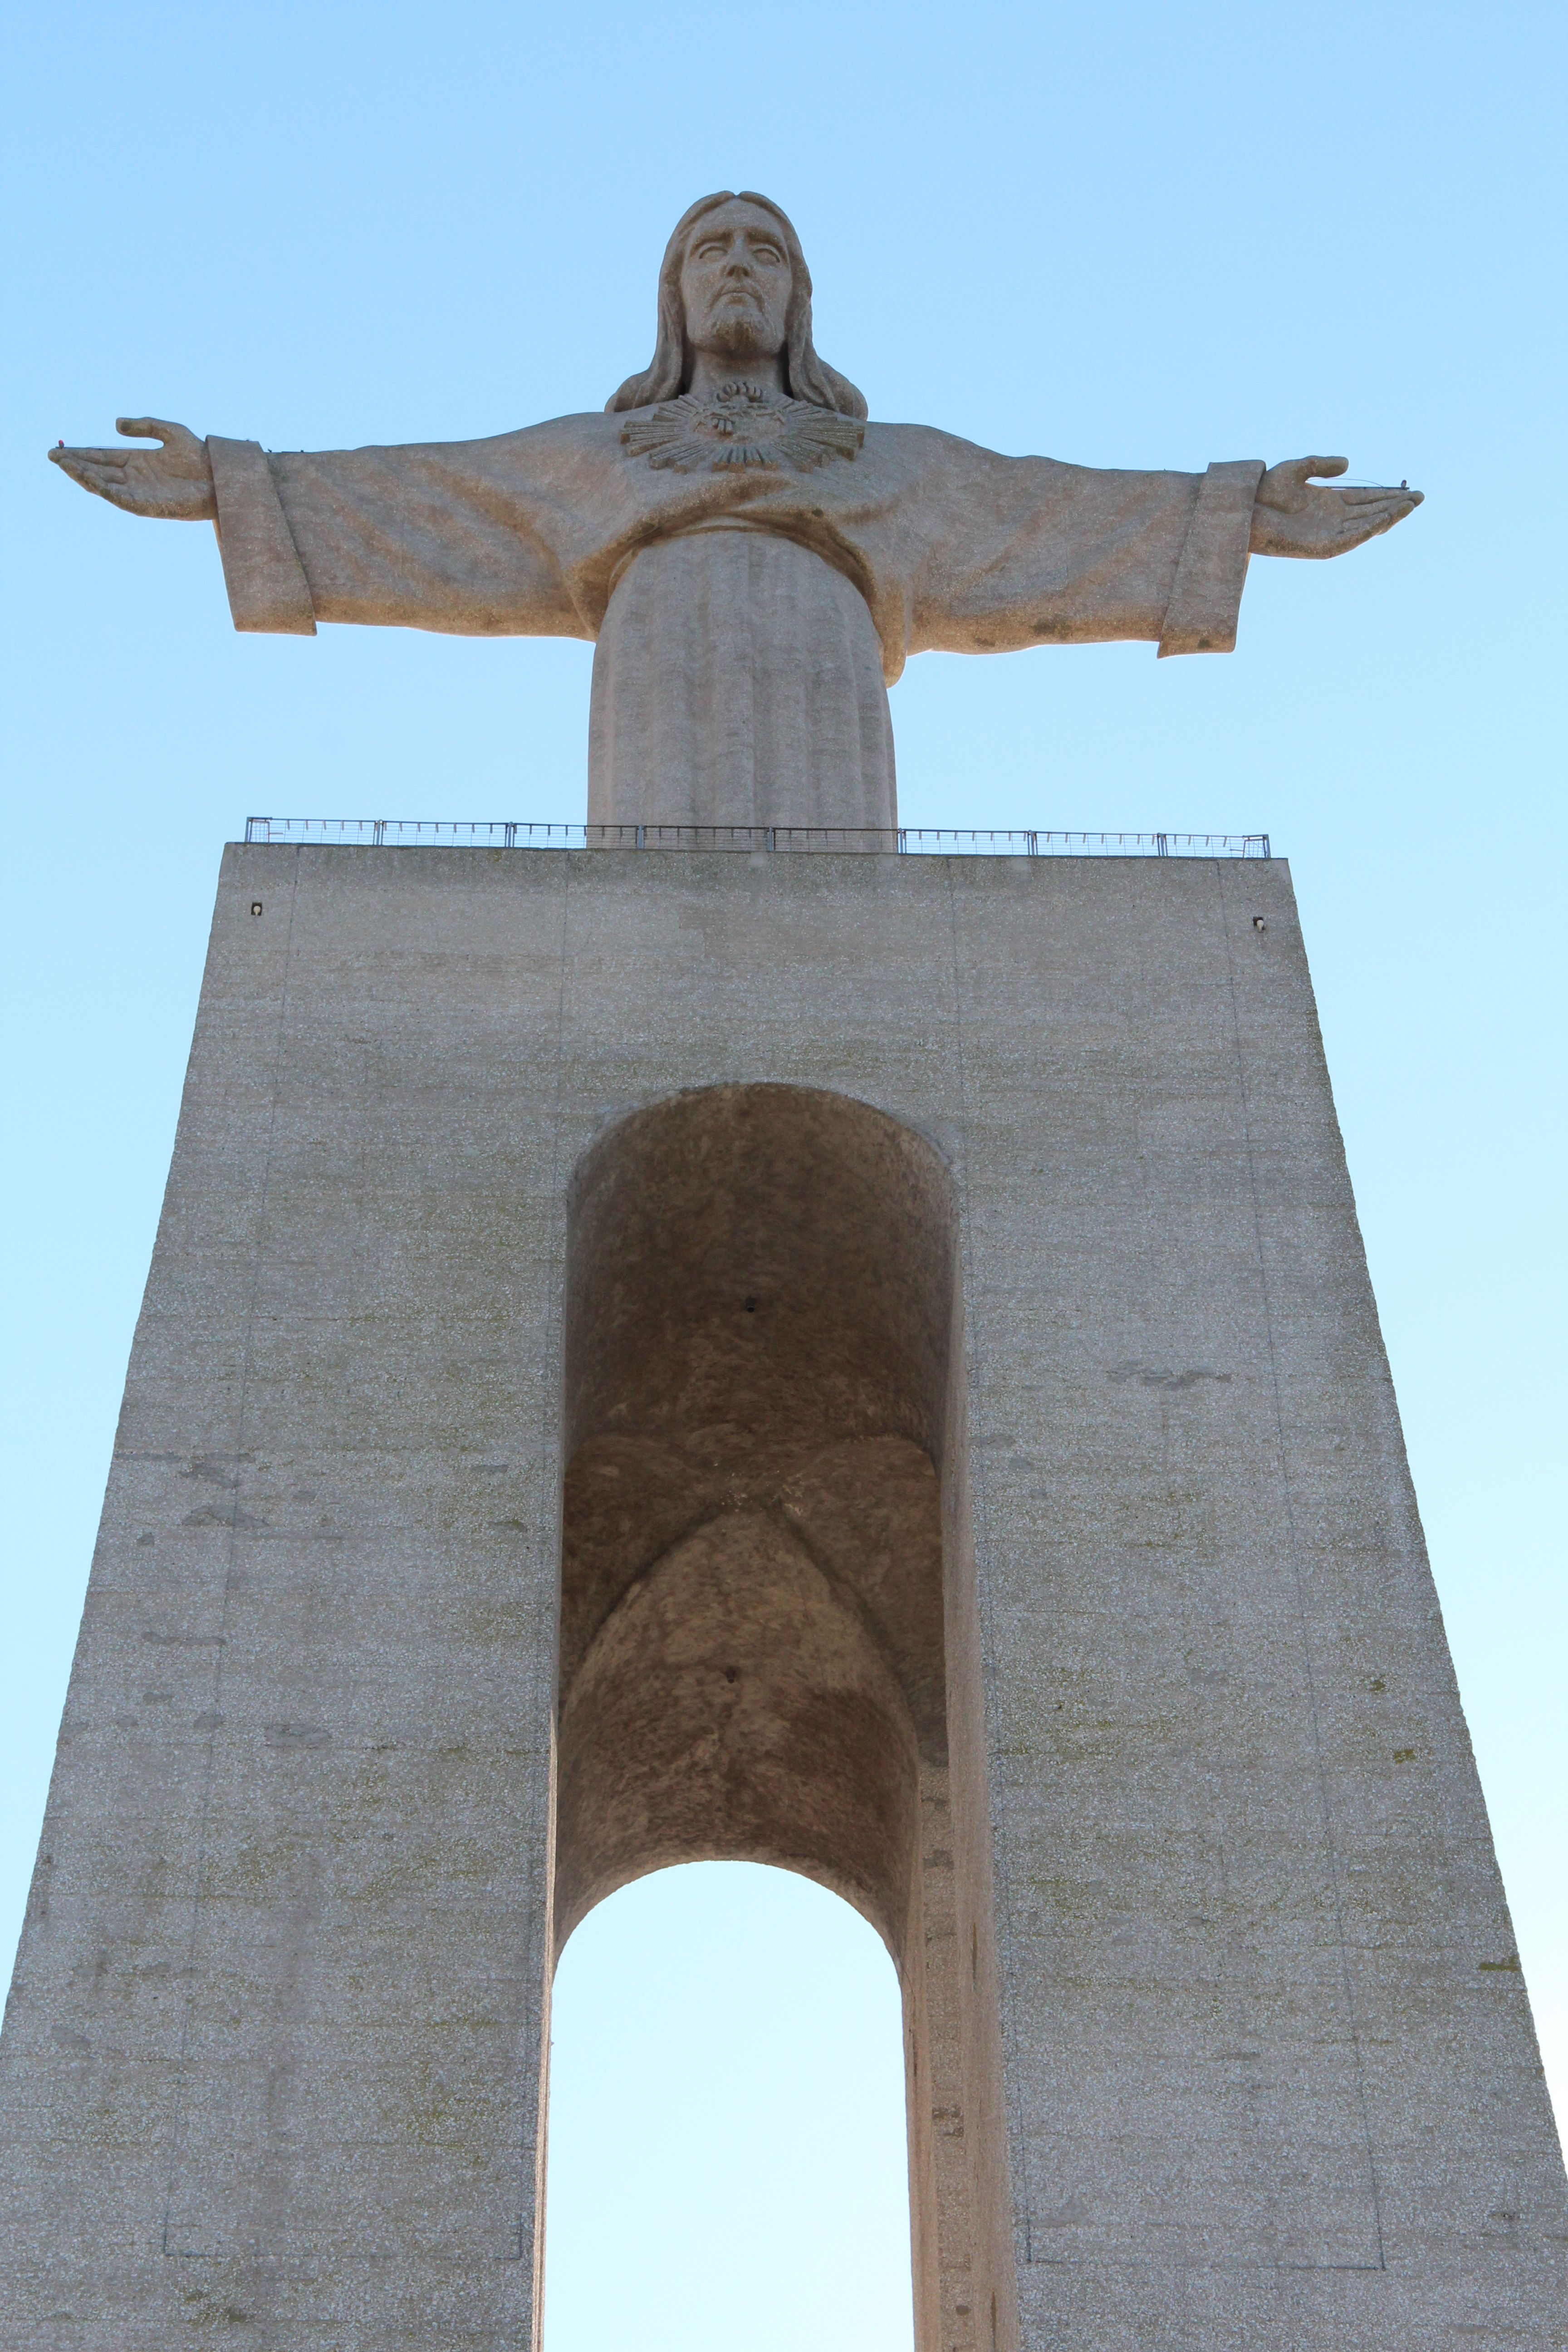 Cristo rei christ the king lisbon portugal its dedicated to the statue of christ symbol of portugals capital biocorpaavc